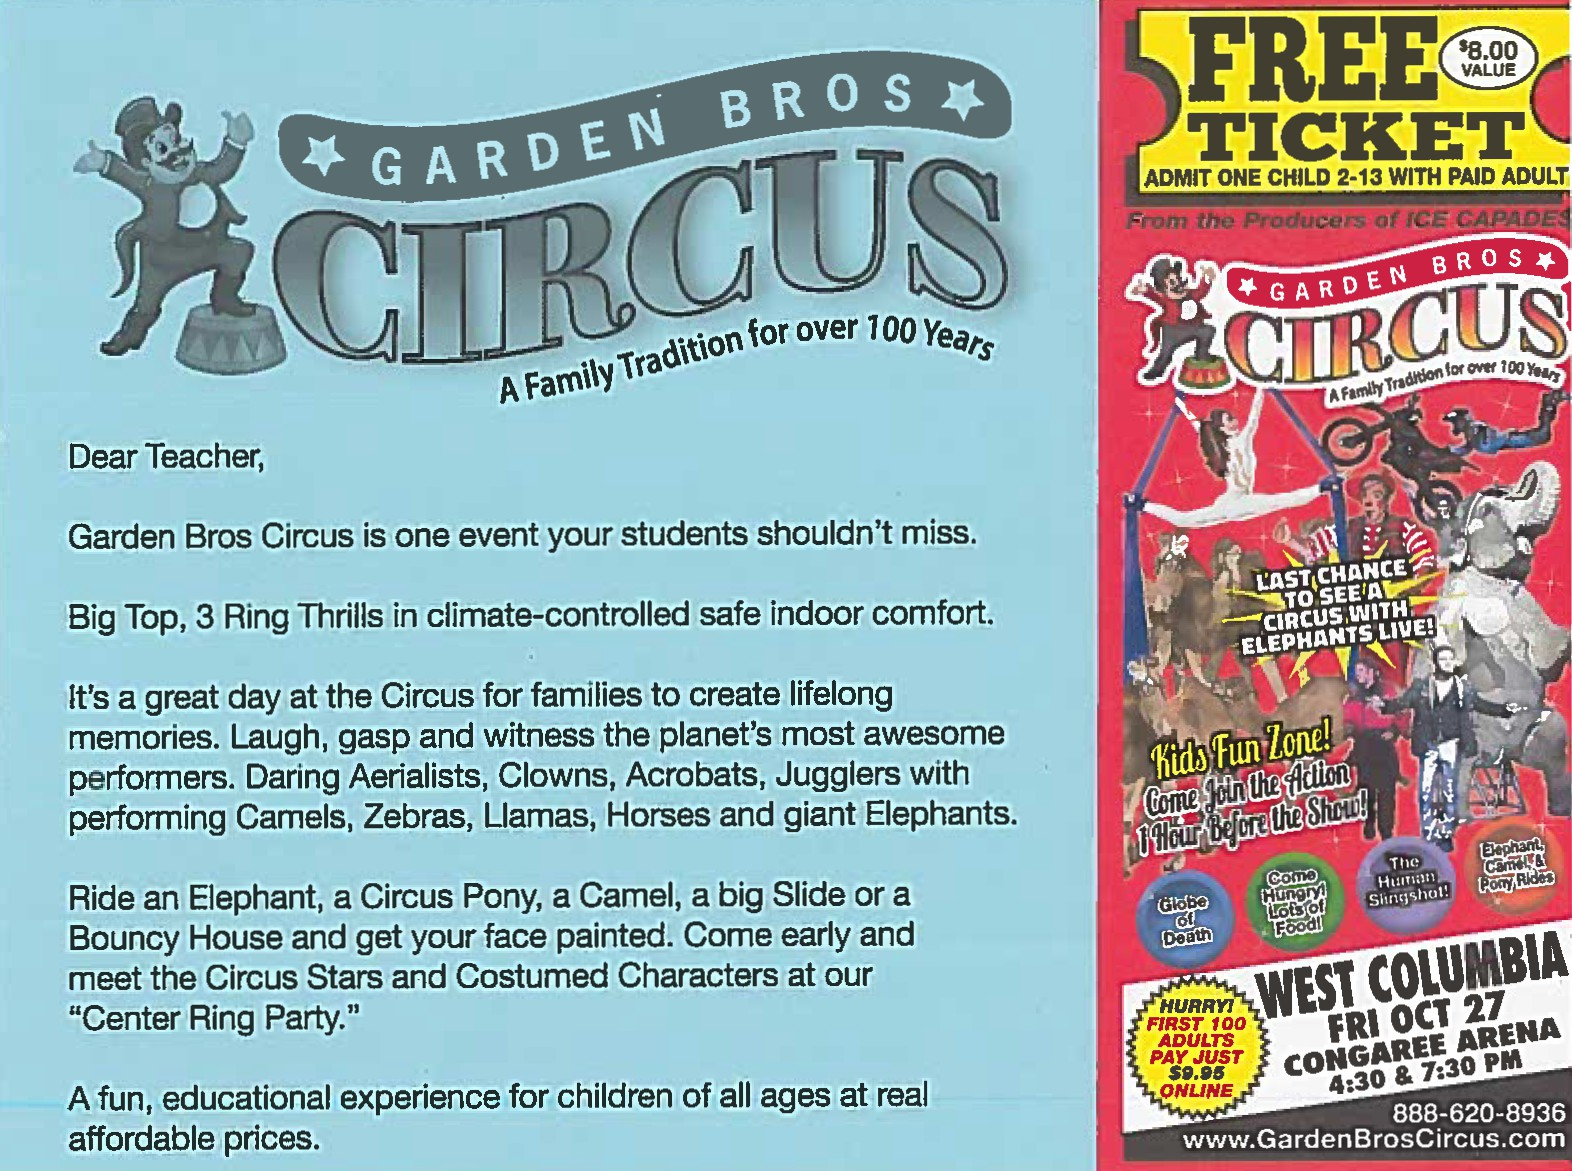 At The View Daily Free Garden Bros Circus Tickets